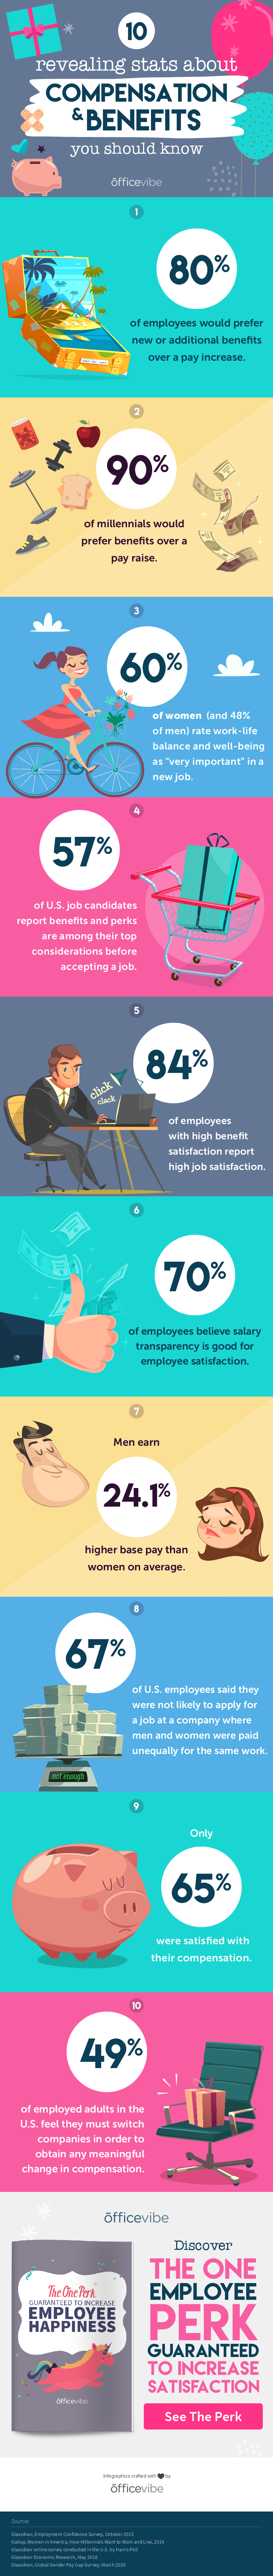 10 Revealing Statistics About Compensation And Benefits You Should Know [Infographic]